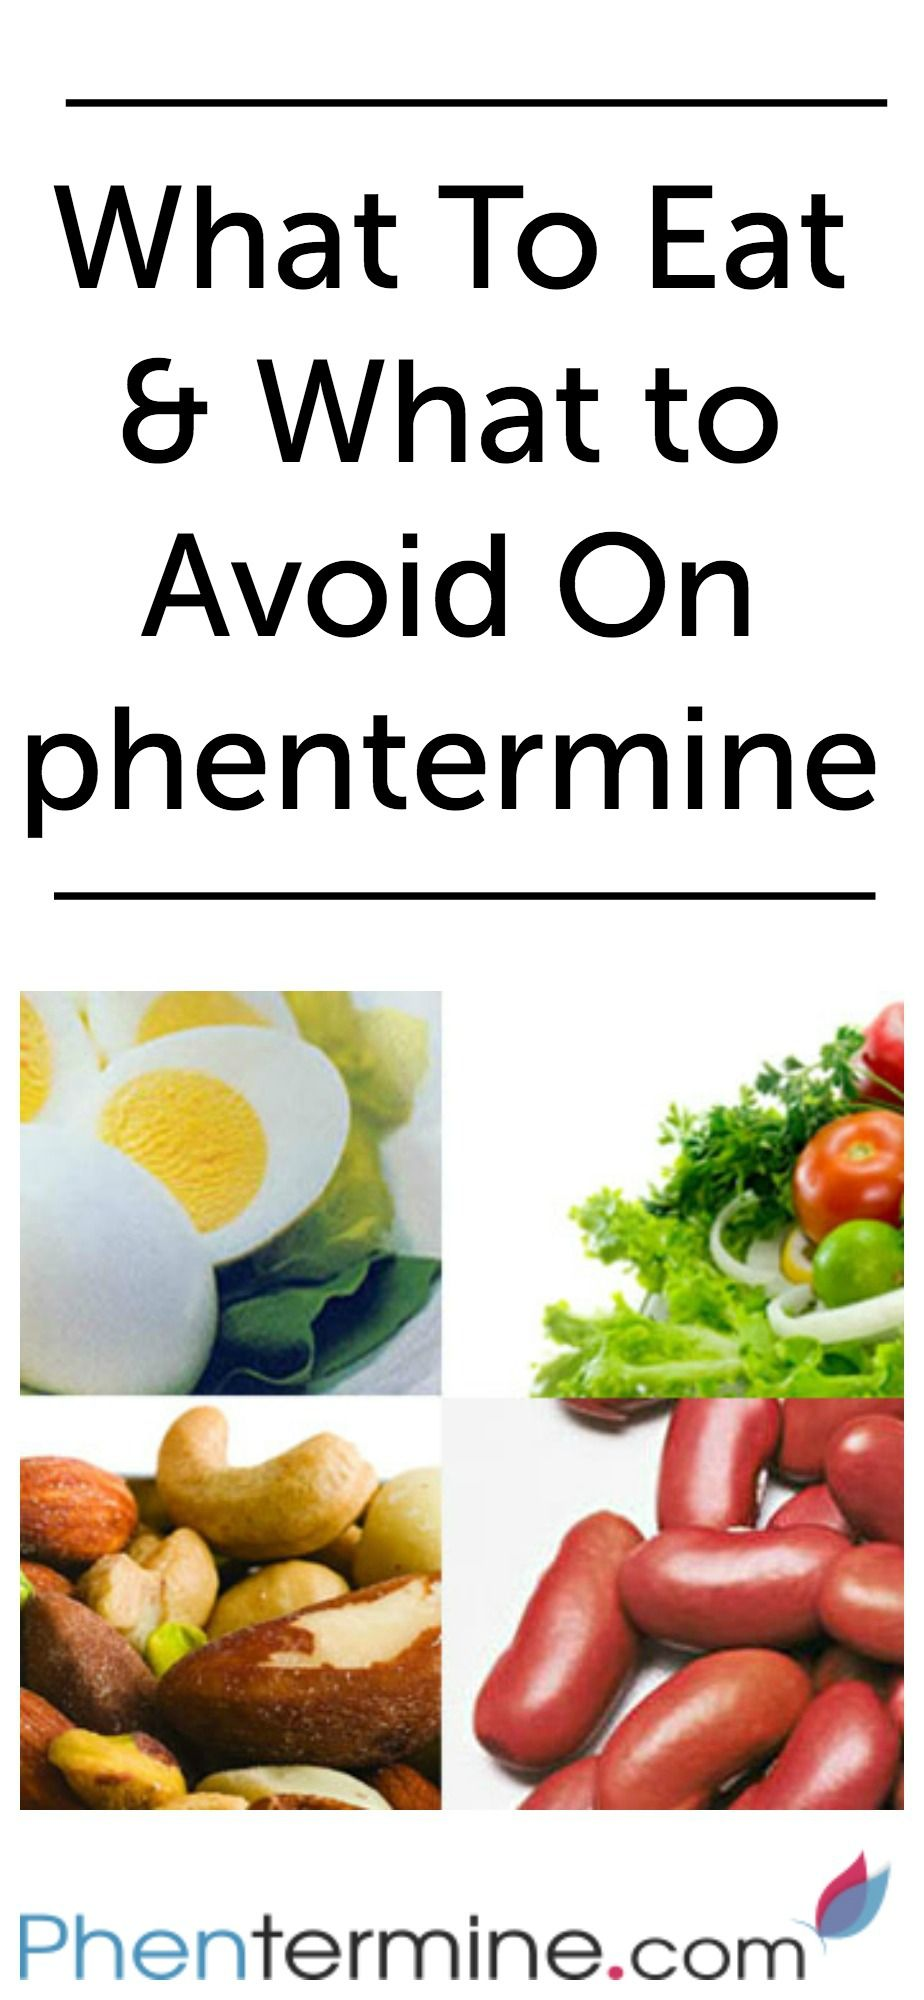 how soon do you lose weight on phentermine